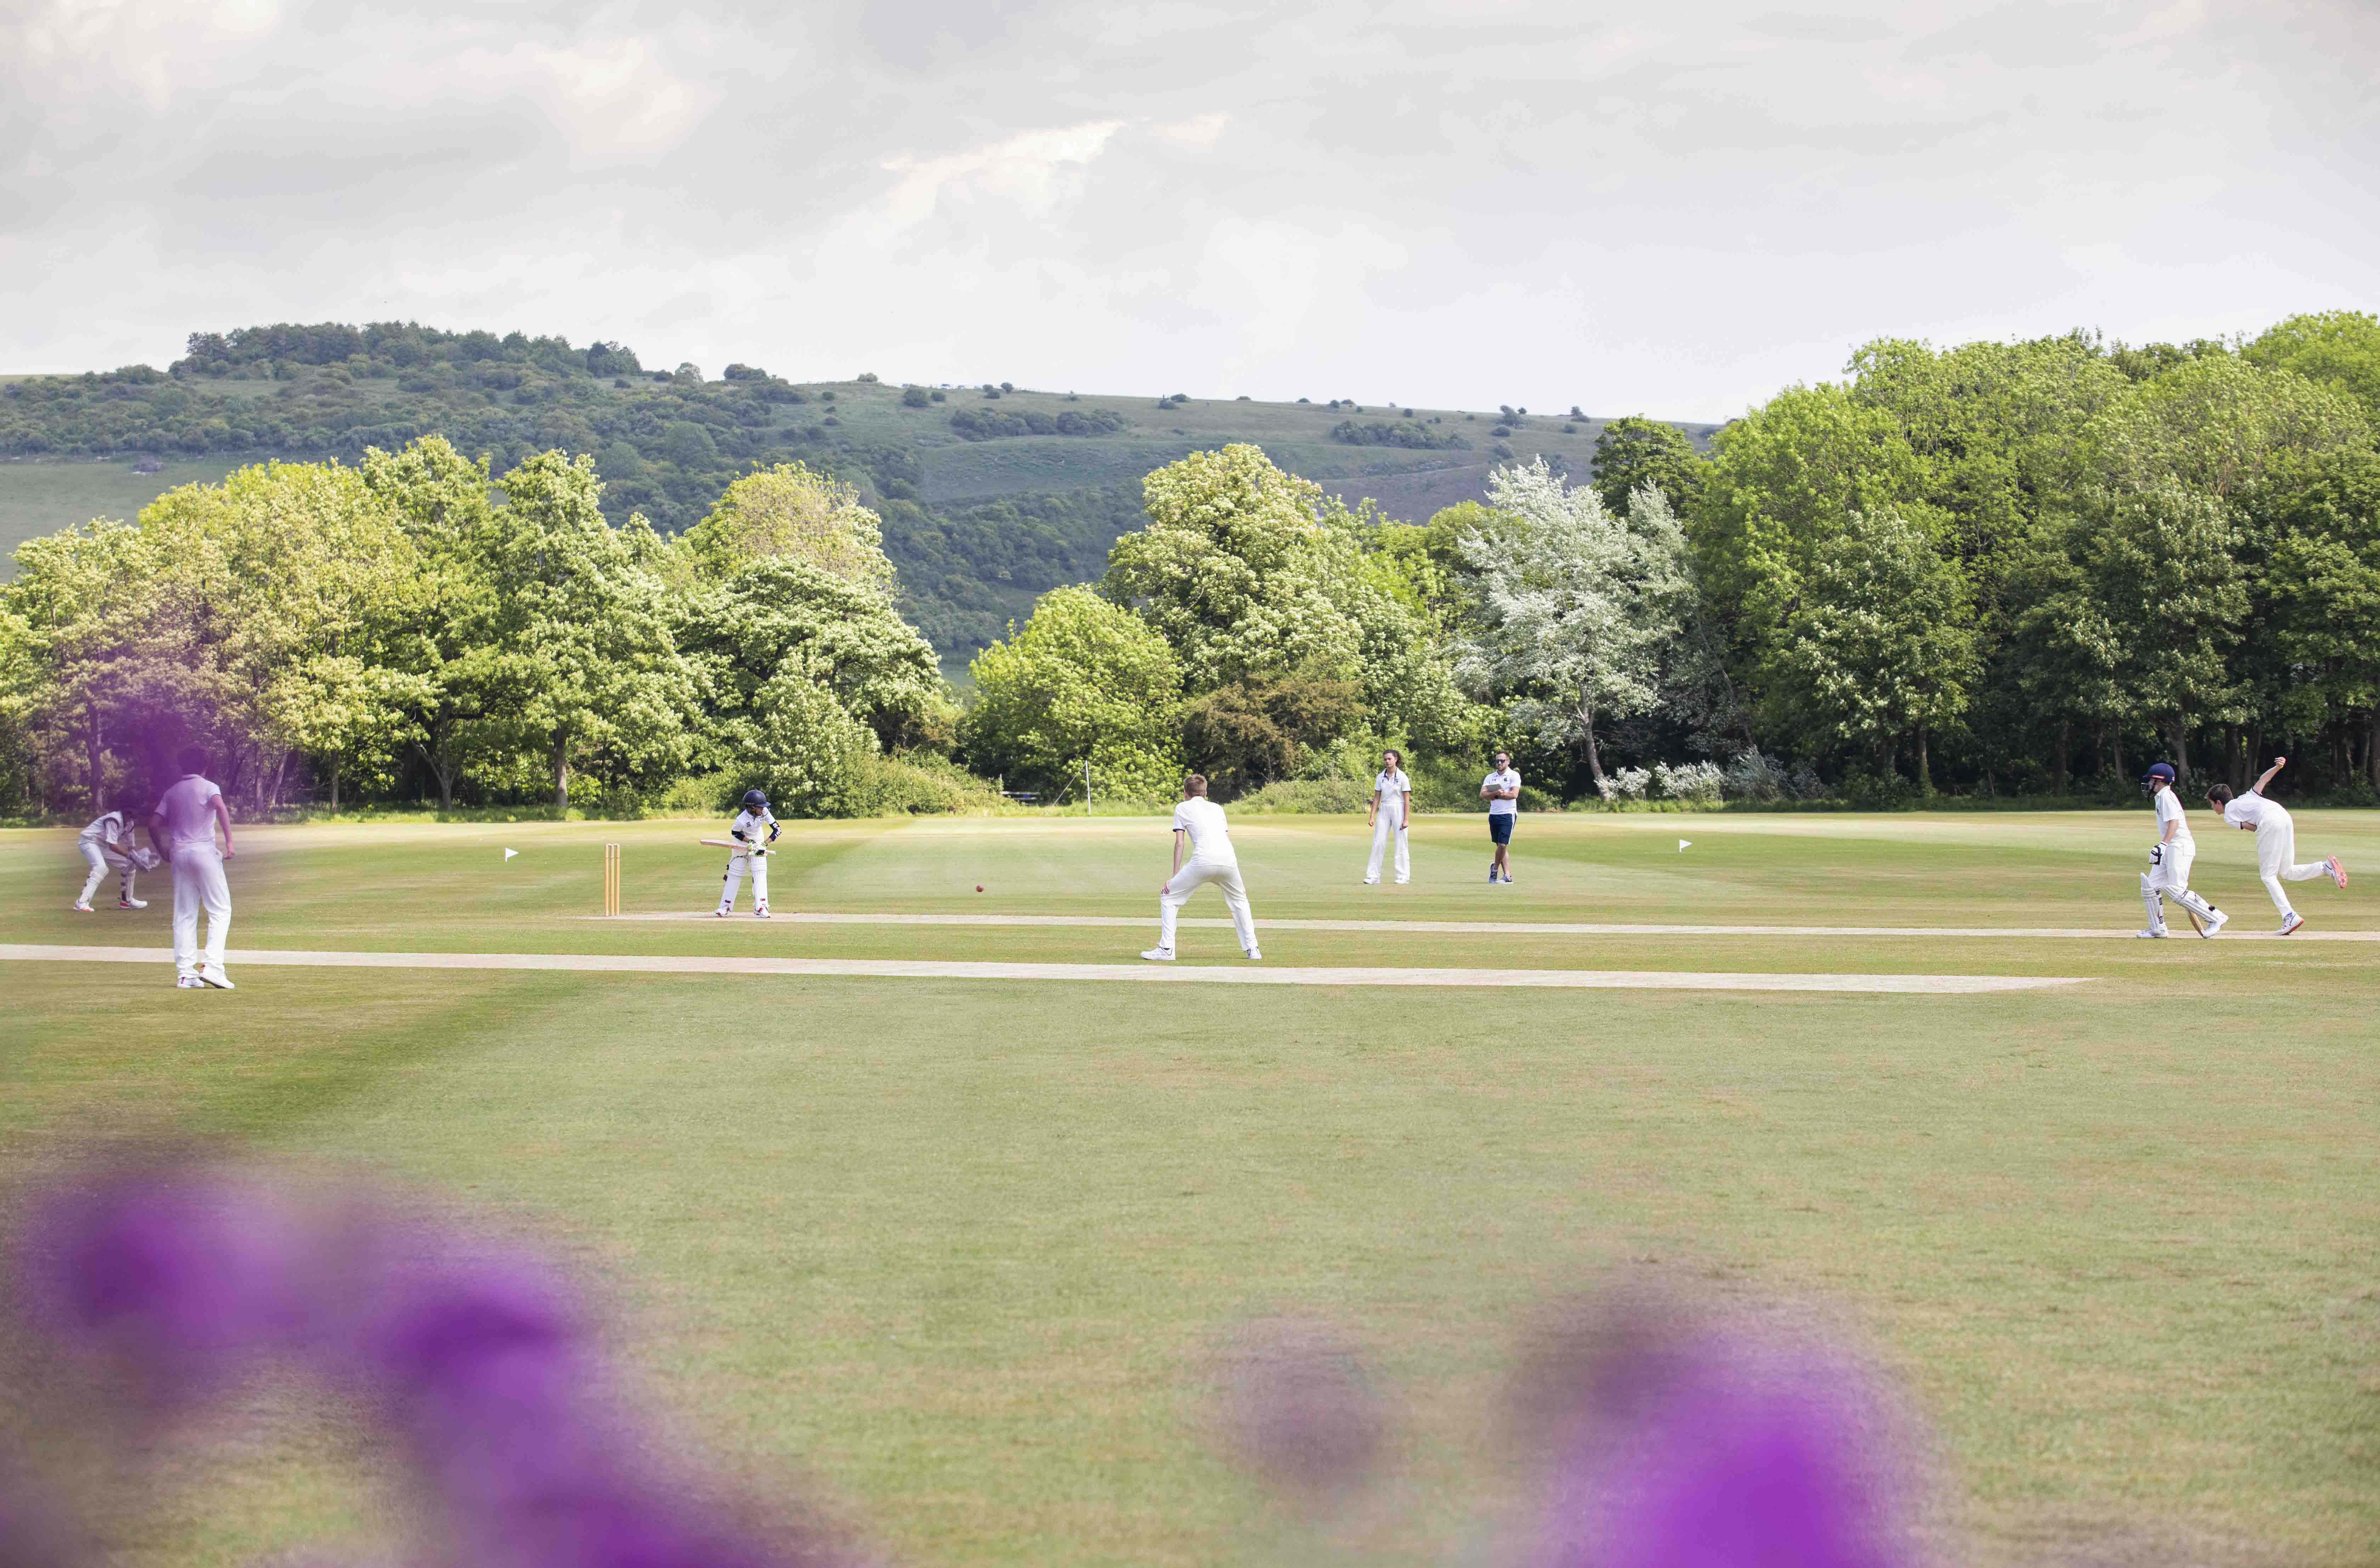 Lancing College, Lancing, West Sussex, England | Sports | Dickinson | British Boarding School Consulting